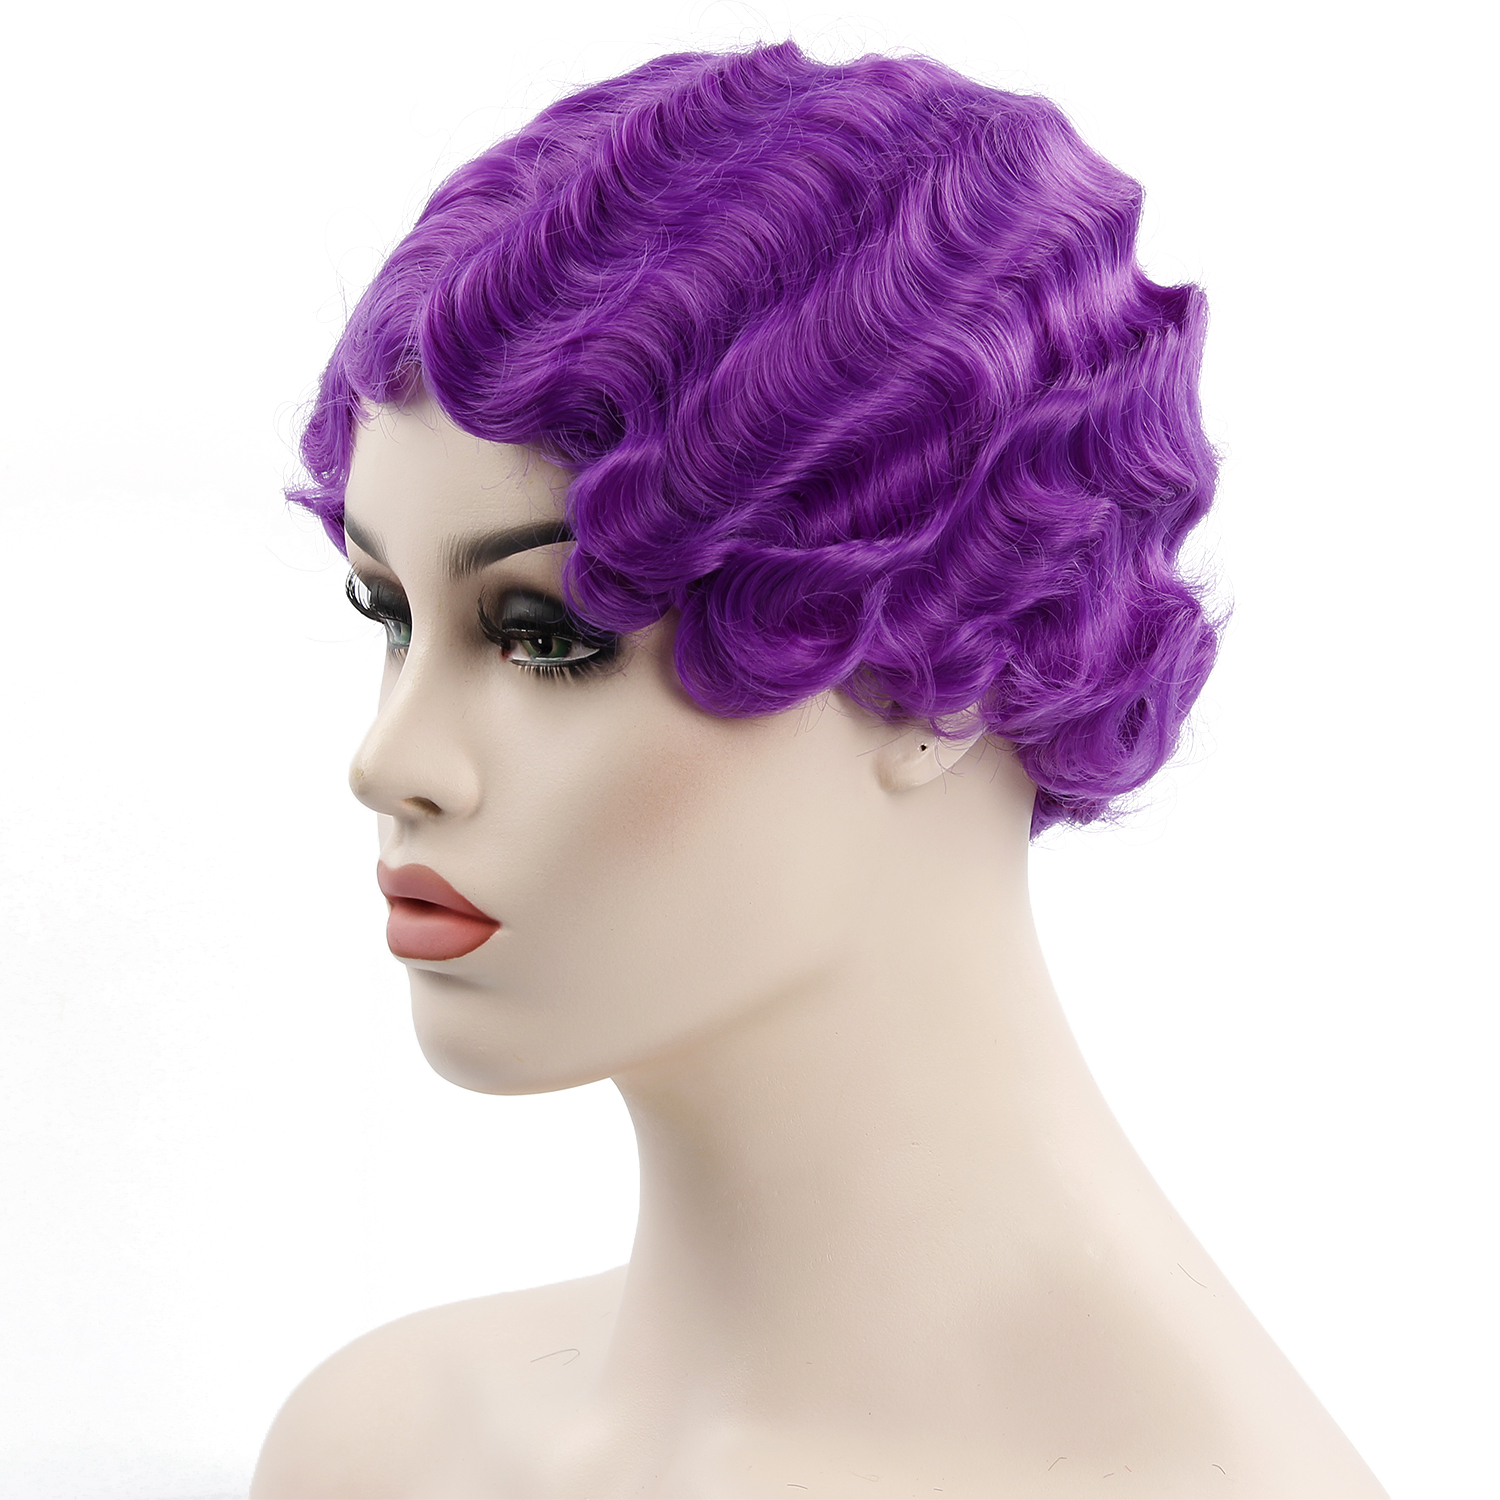 YXCHERISHAIR finger wave Wig for Women Purple Pink Finger Waves Wigs for African American Cosplay wig Hair фото